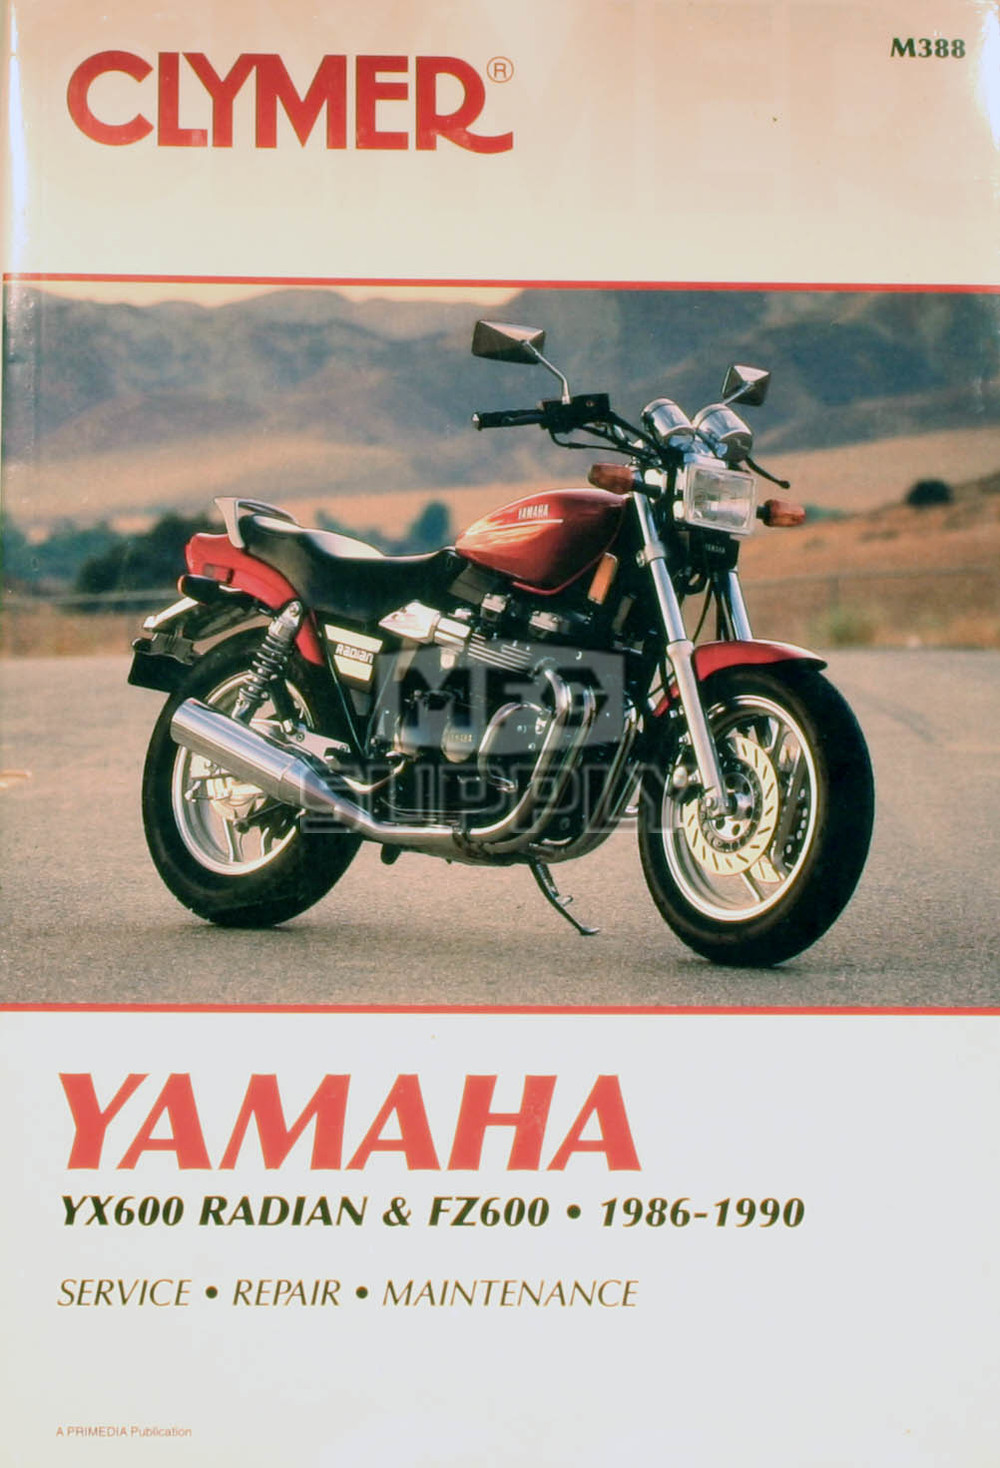 86-90 Yamaha YX600 Radian & FZ600 Repair & Maintenance manual